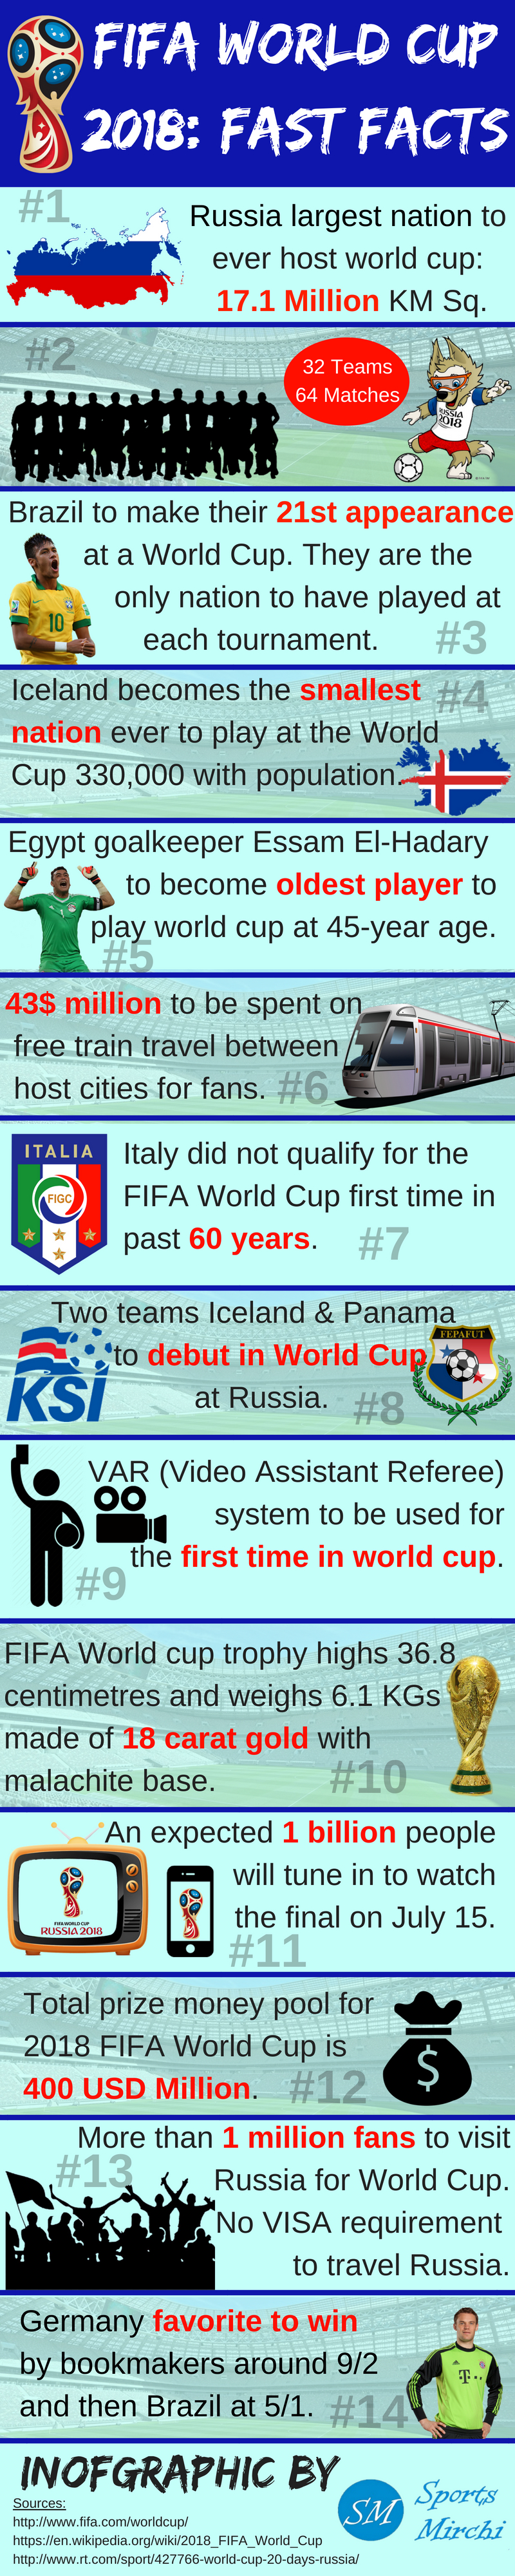 FIFA World Cup 2018 Facts Infographic